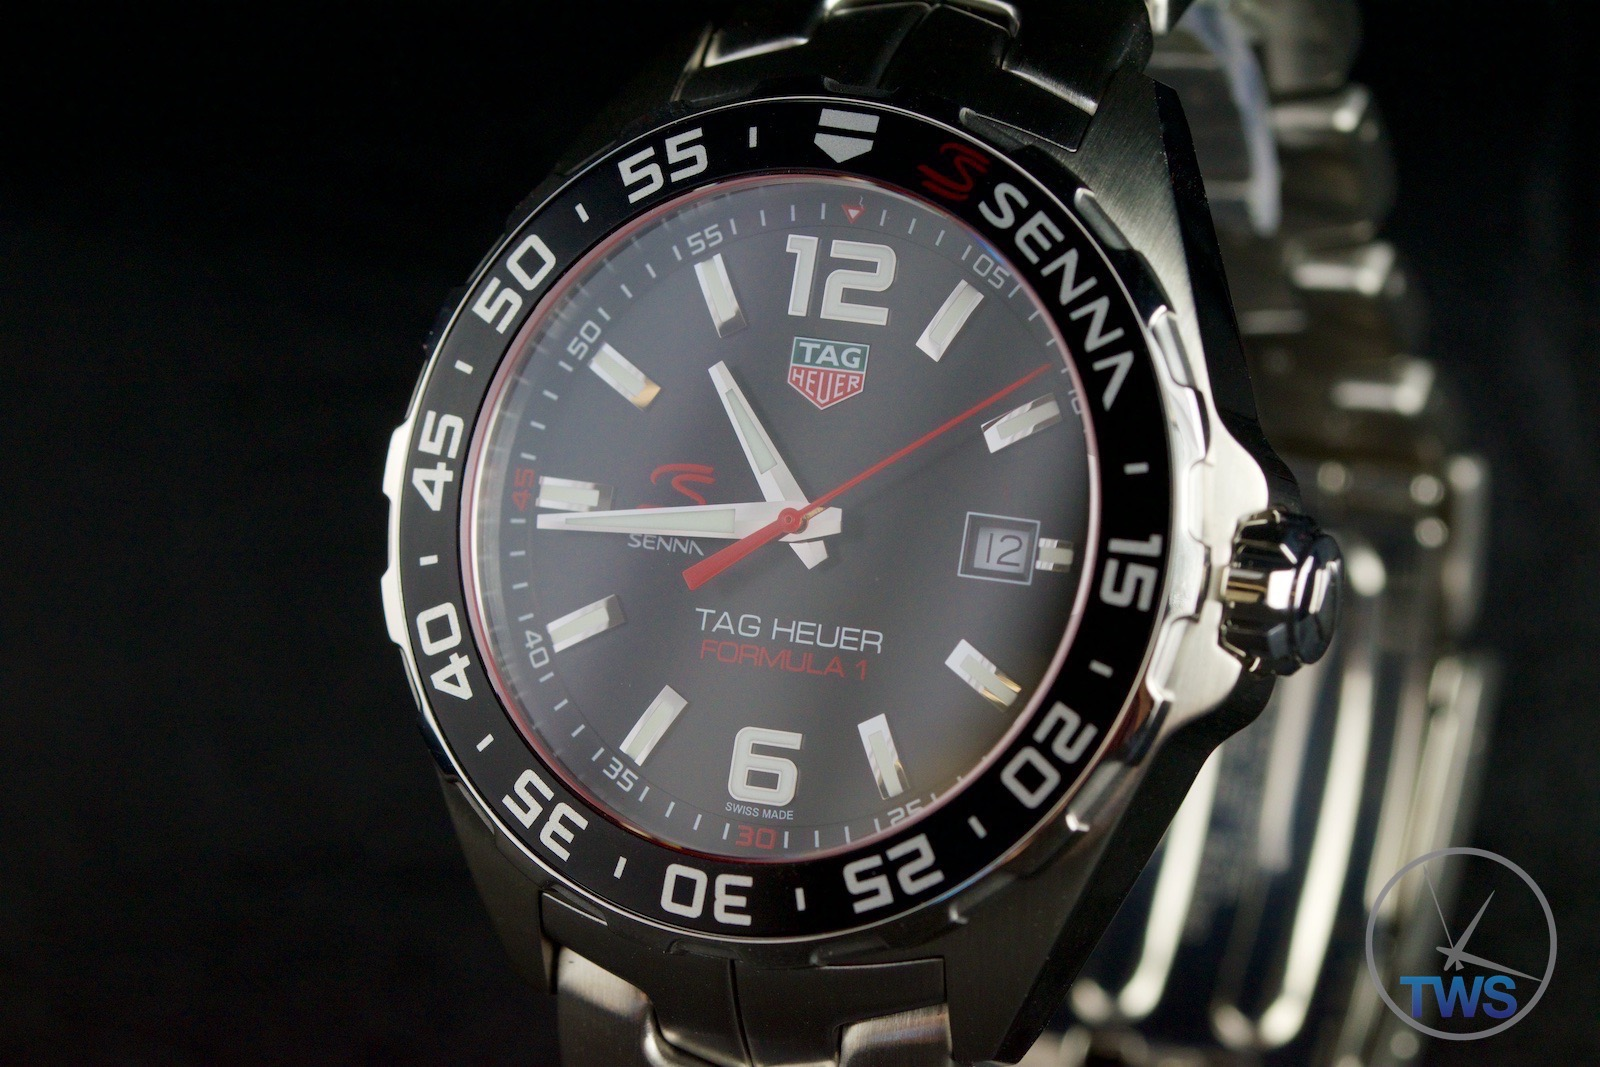 This Tag: Tag Heuer Senna Special Edition Formula 1 Watch: Unboxing